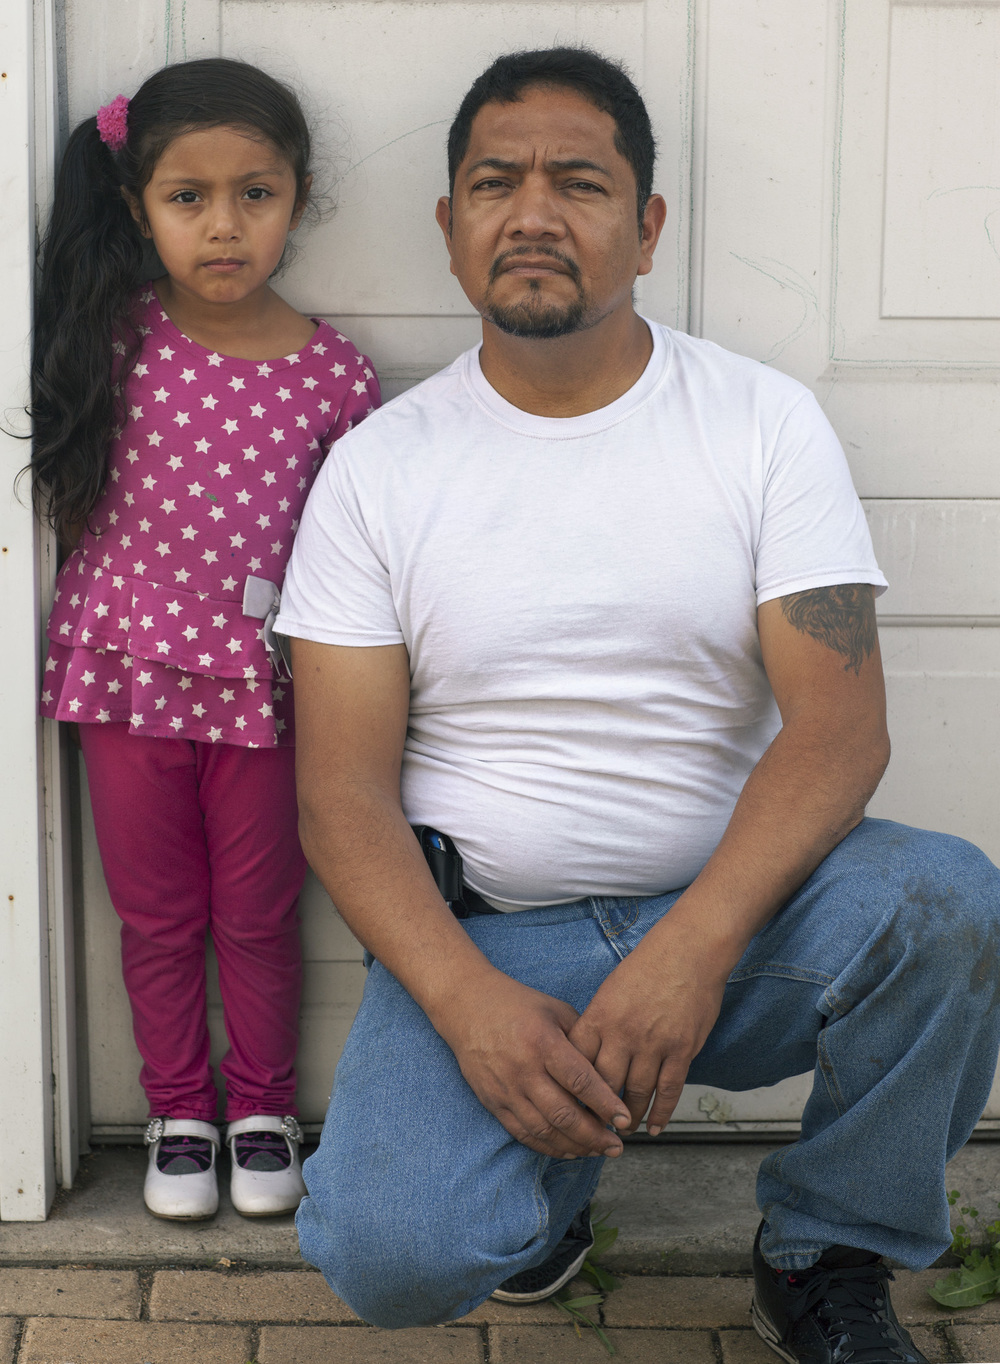 Martin Morales, activist, and his daughter, Scarlet, 2015. Terry Evans